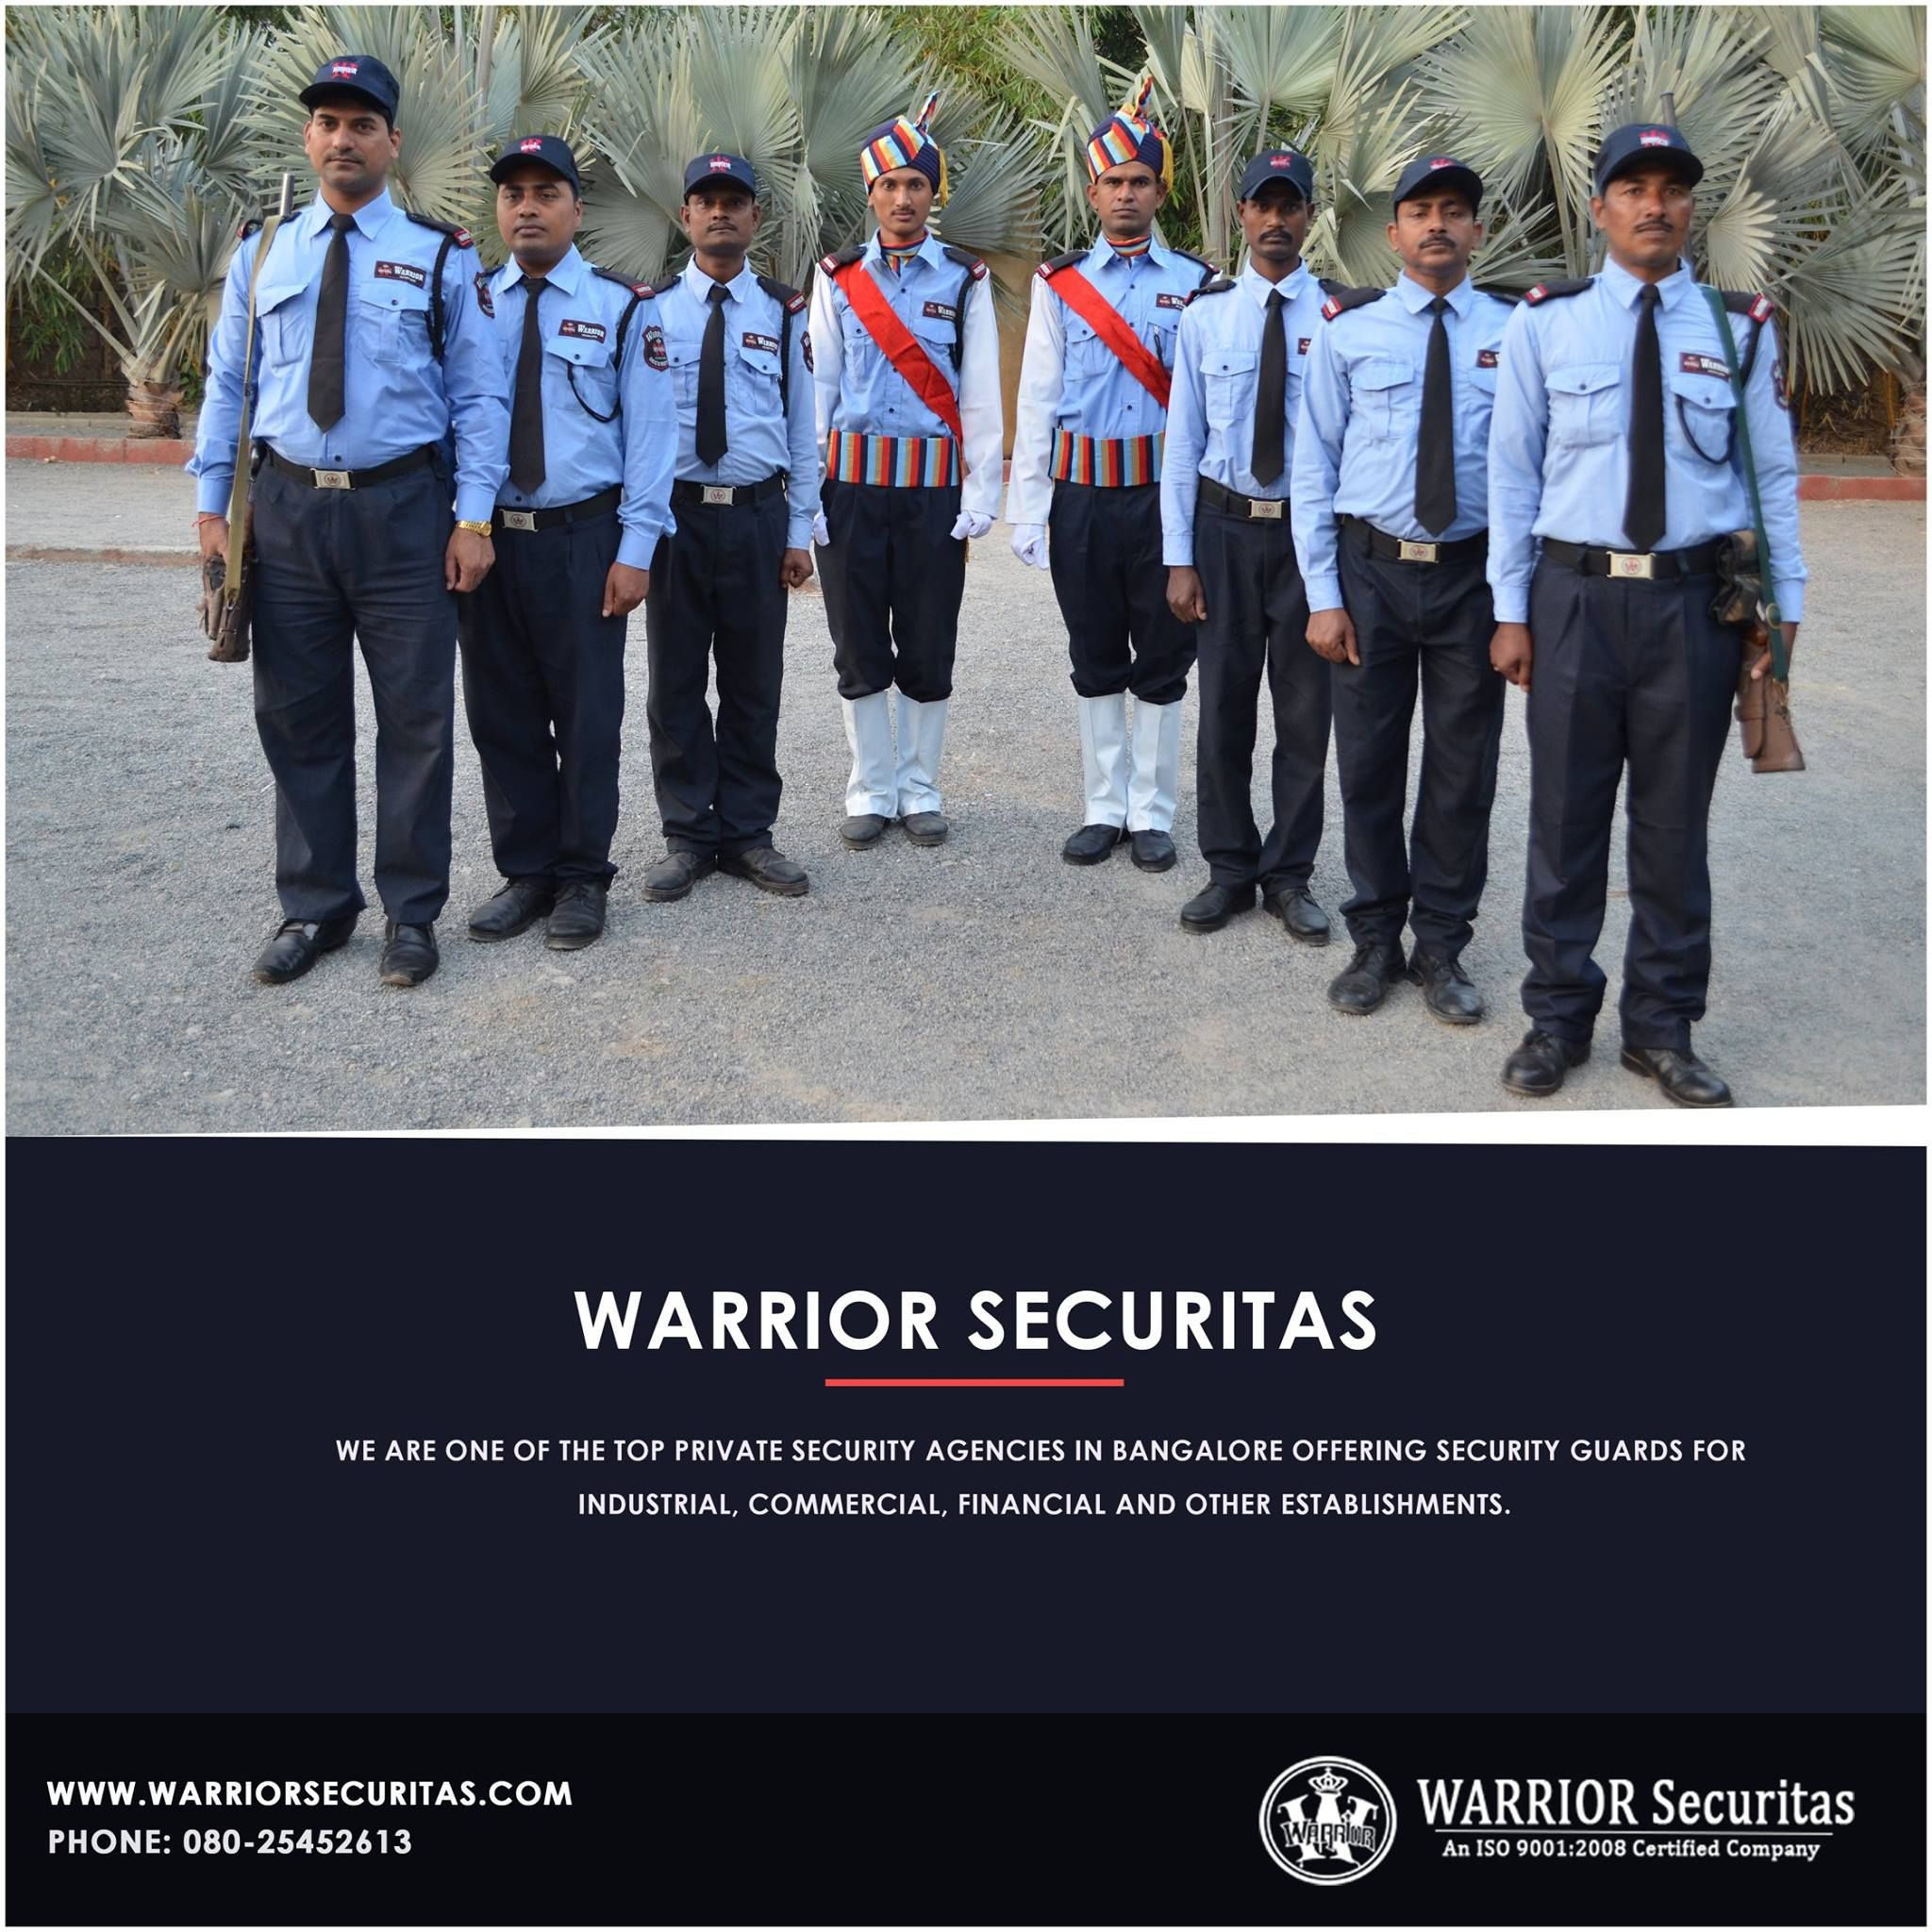 Looking for Bangalore security services? Warrior Securitas